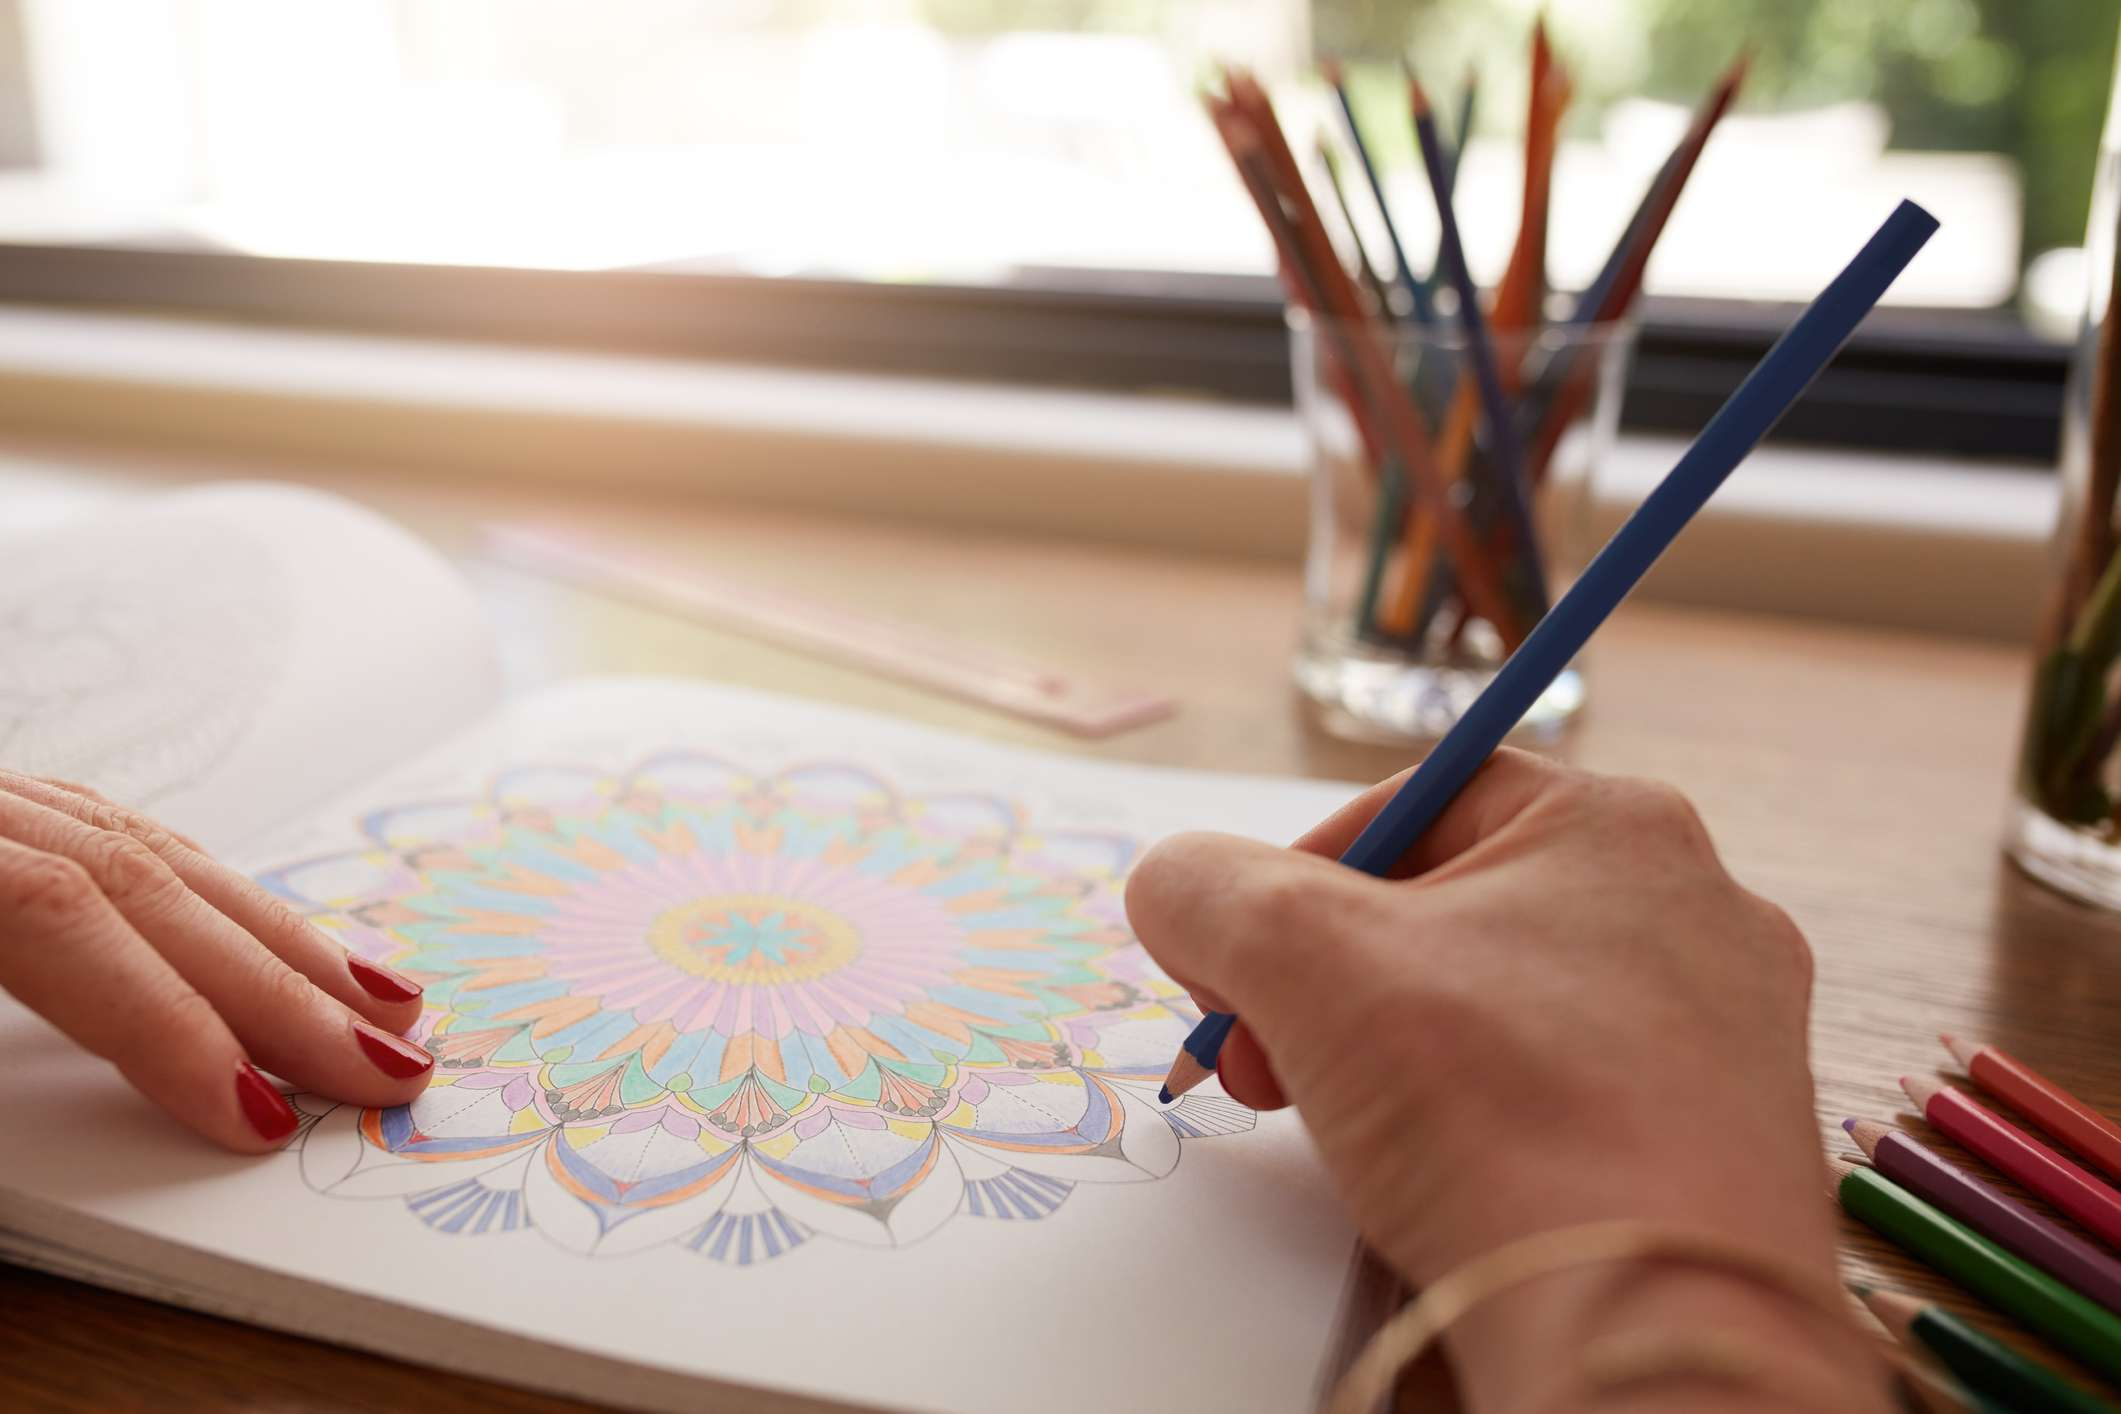 Human hands color in adult coloring book